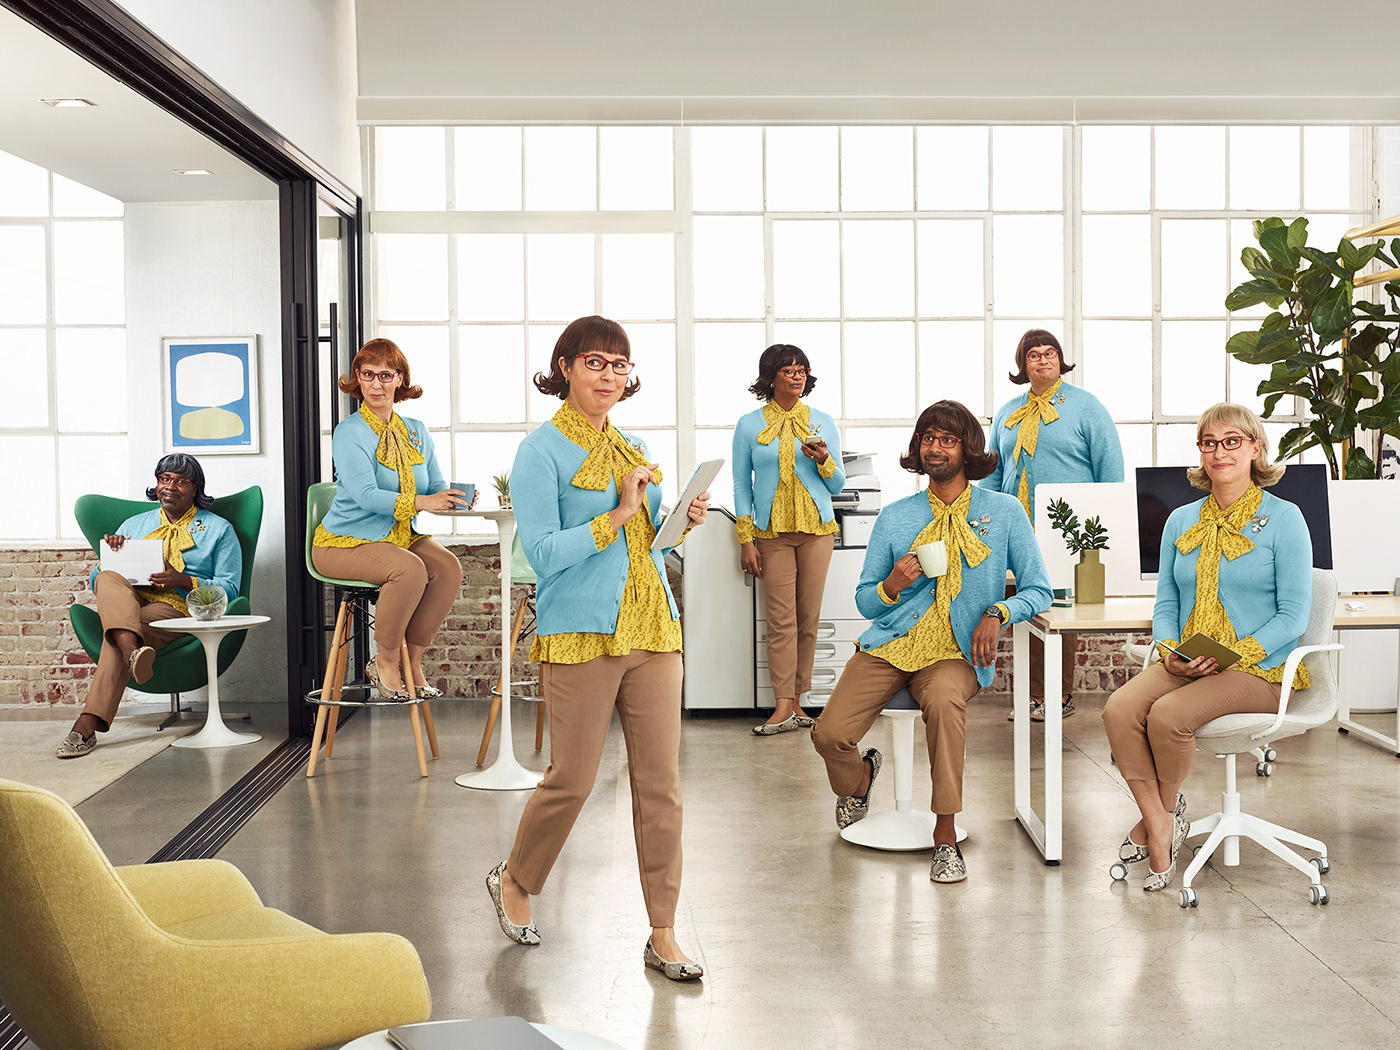 Advertising  campaign computers conceptual creative funny humor Office software agca